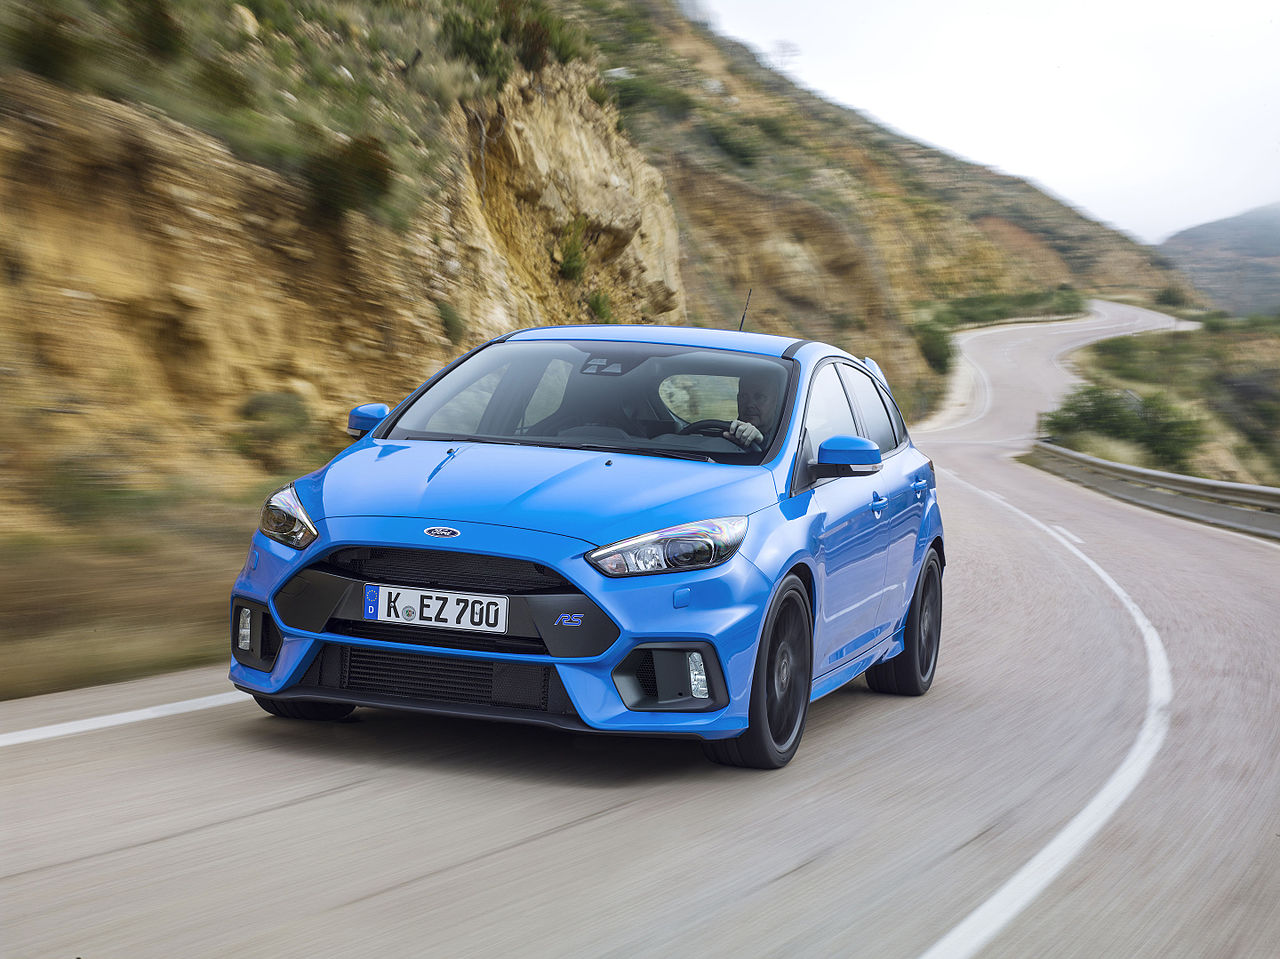 Ford Focus RS : The Perfect Tuner Car? - The Muse Box